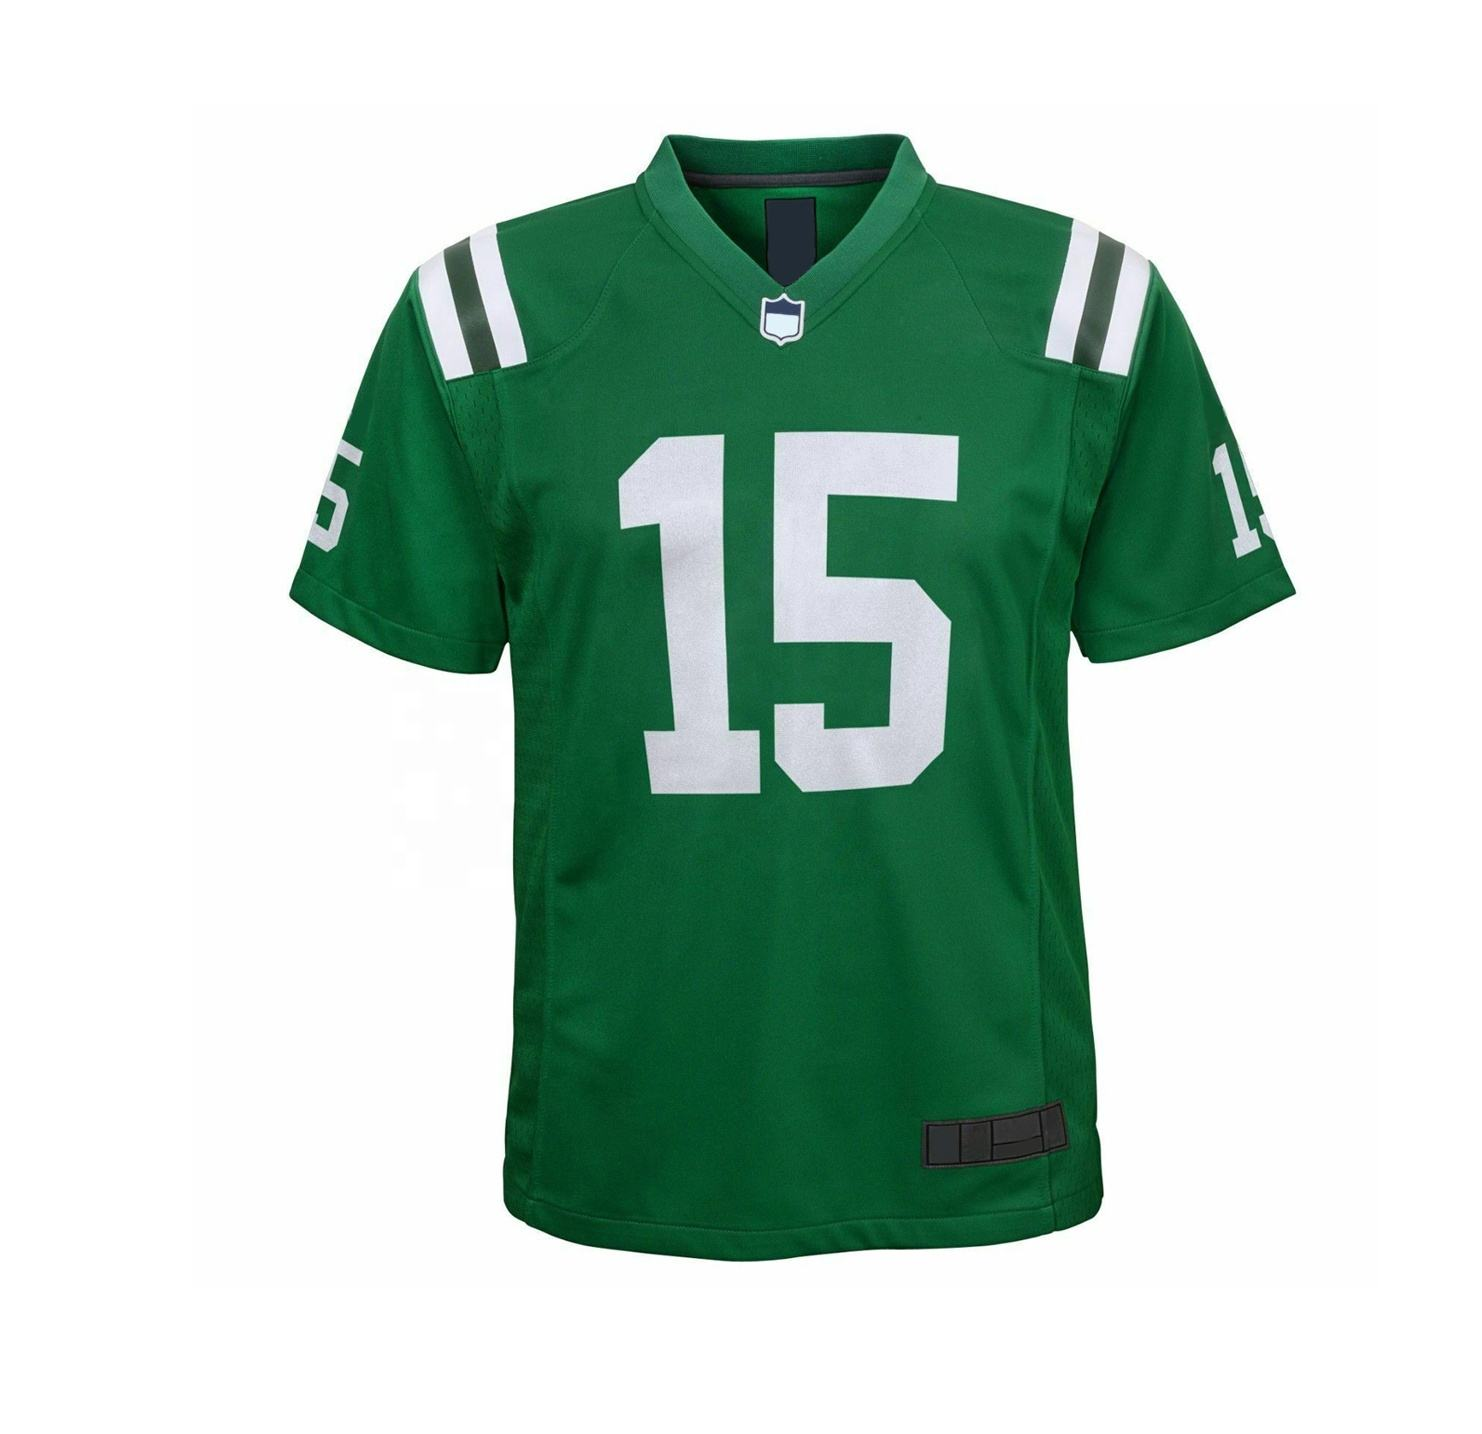 Wholesale custom american football jersey High Quality american football wear American Football NFL JERSEY